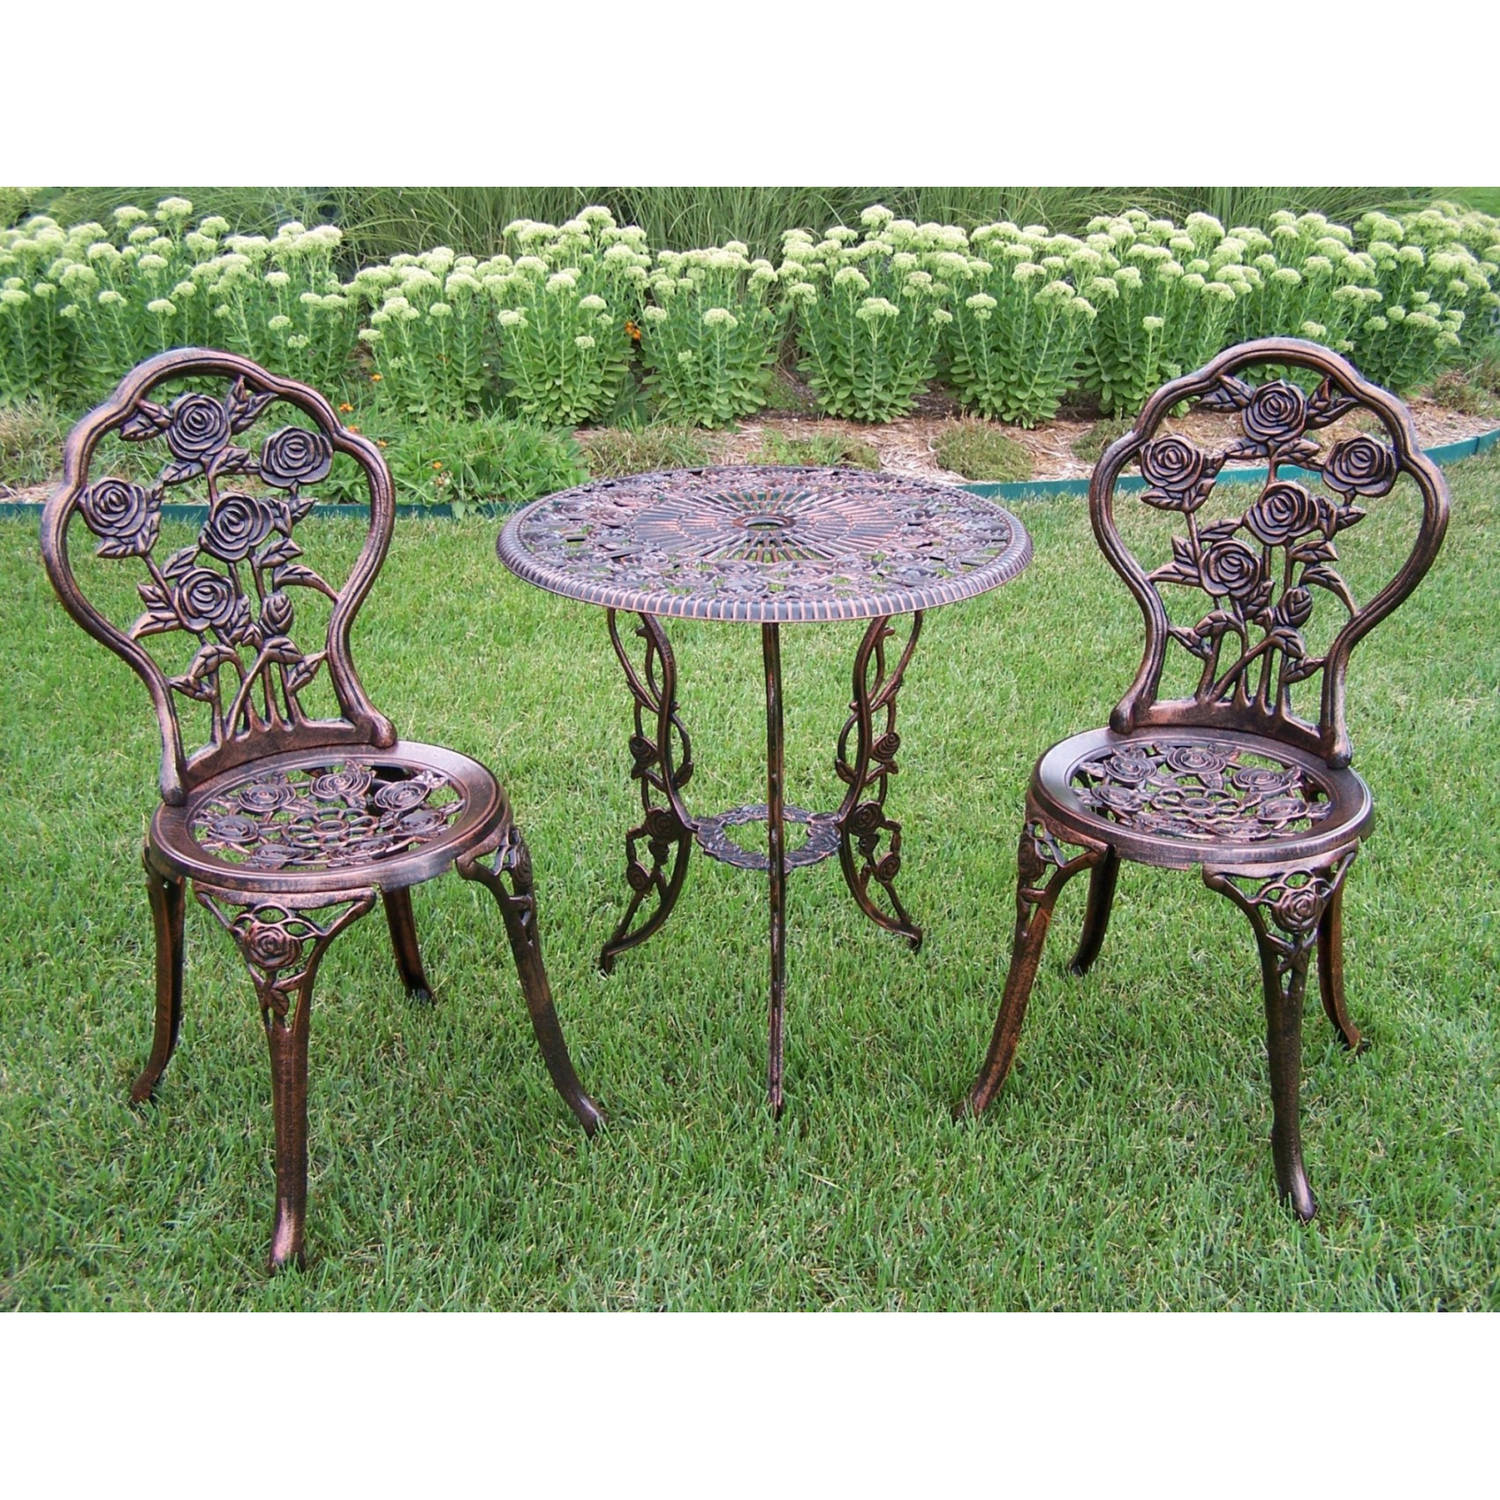 Antique iron patio furniture - Antique Iron Patio Furniture